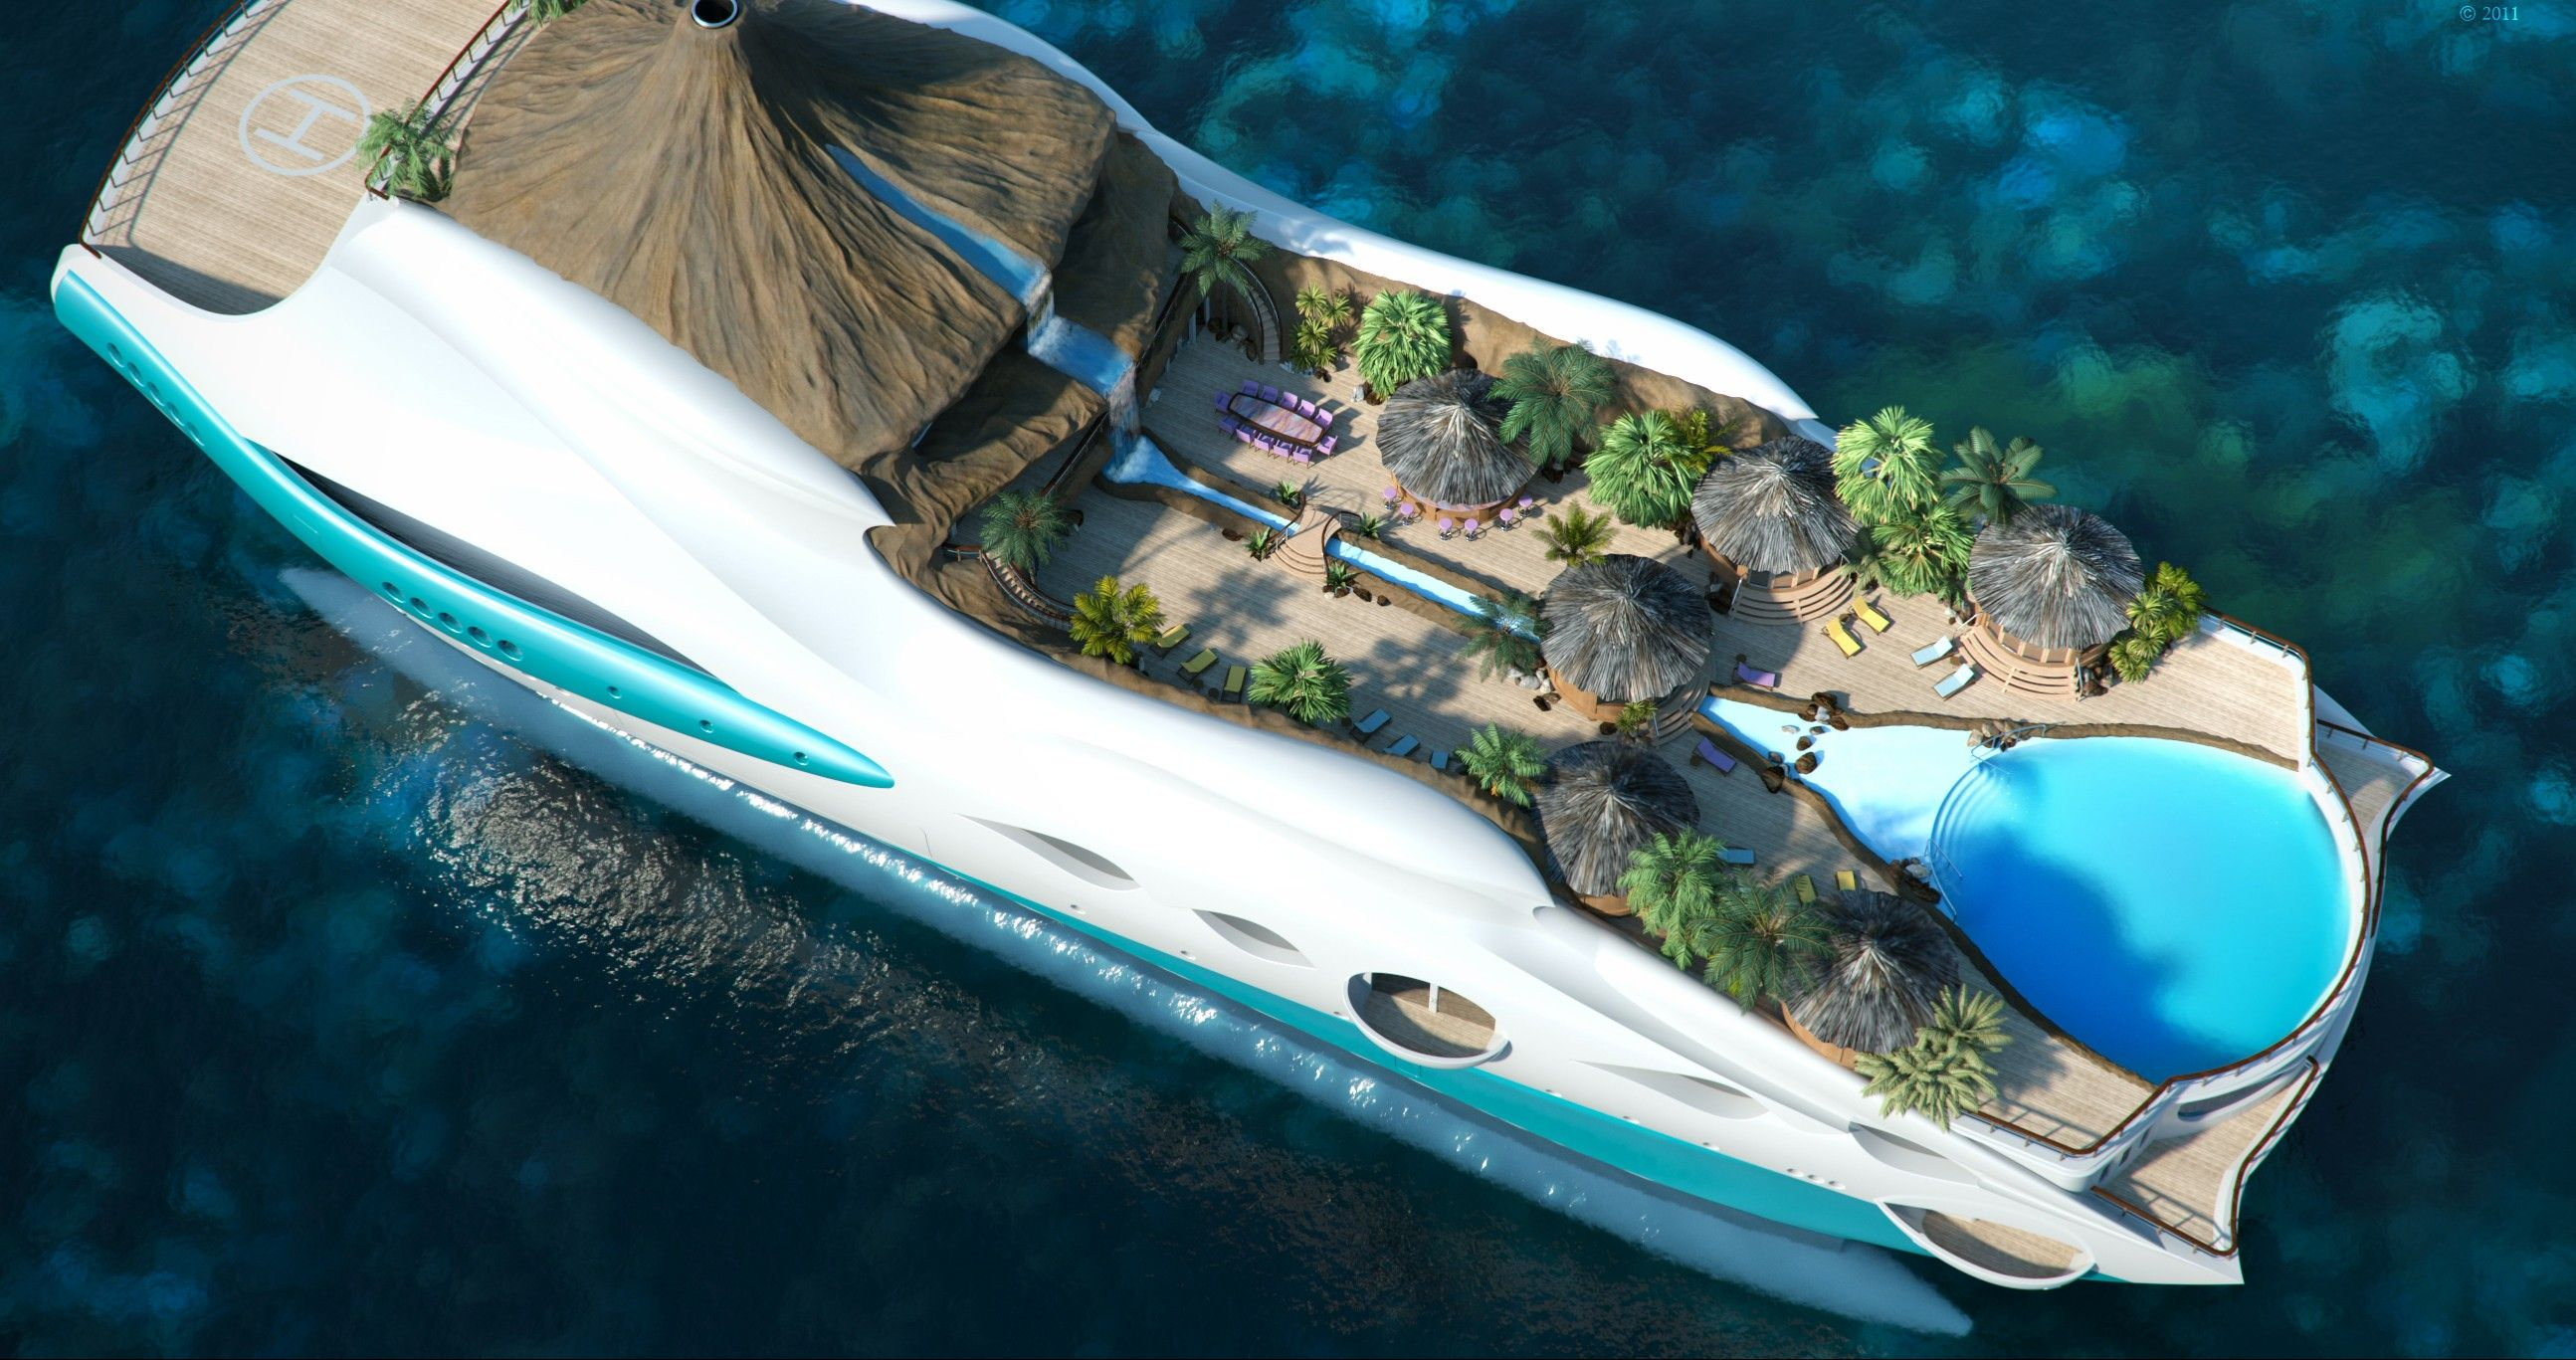 Top 12 Coolest Concept Yachts Ever Built